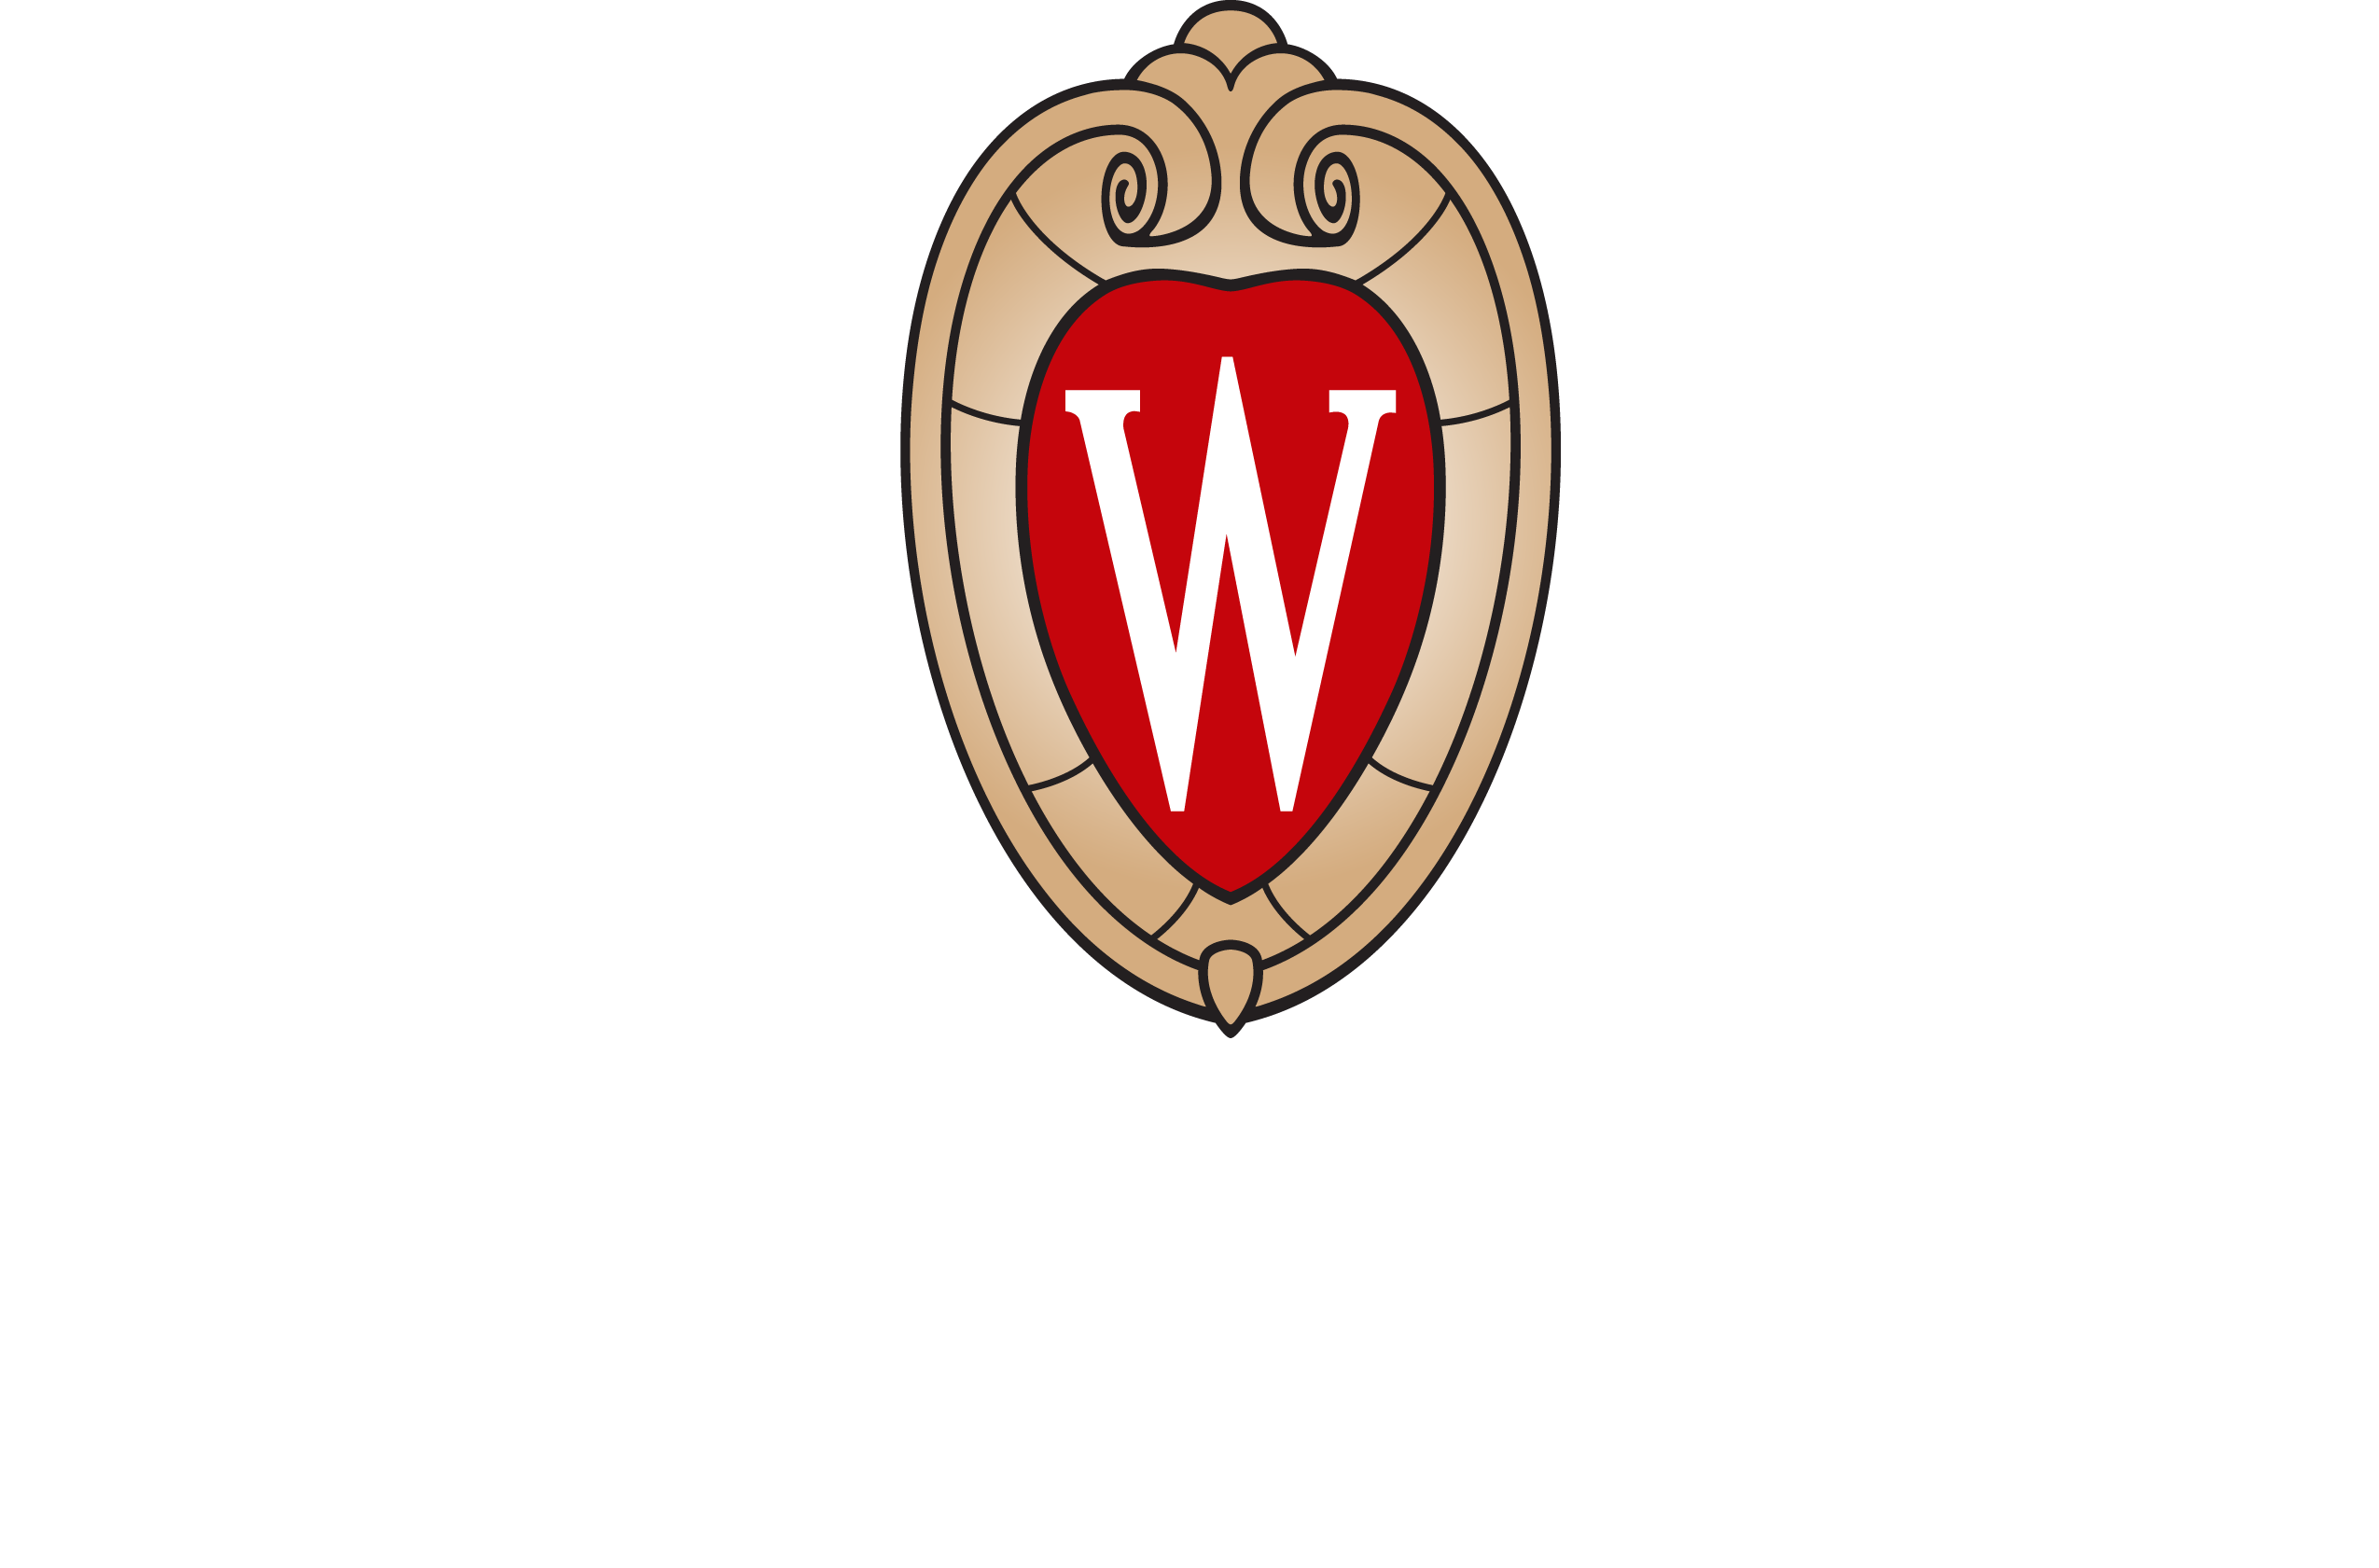 University of Wisconsin-Madison Crest